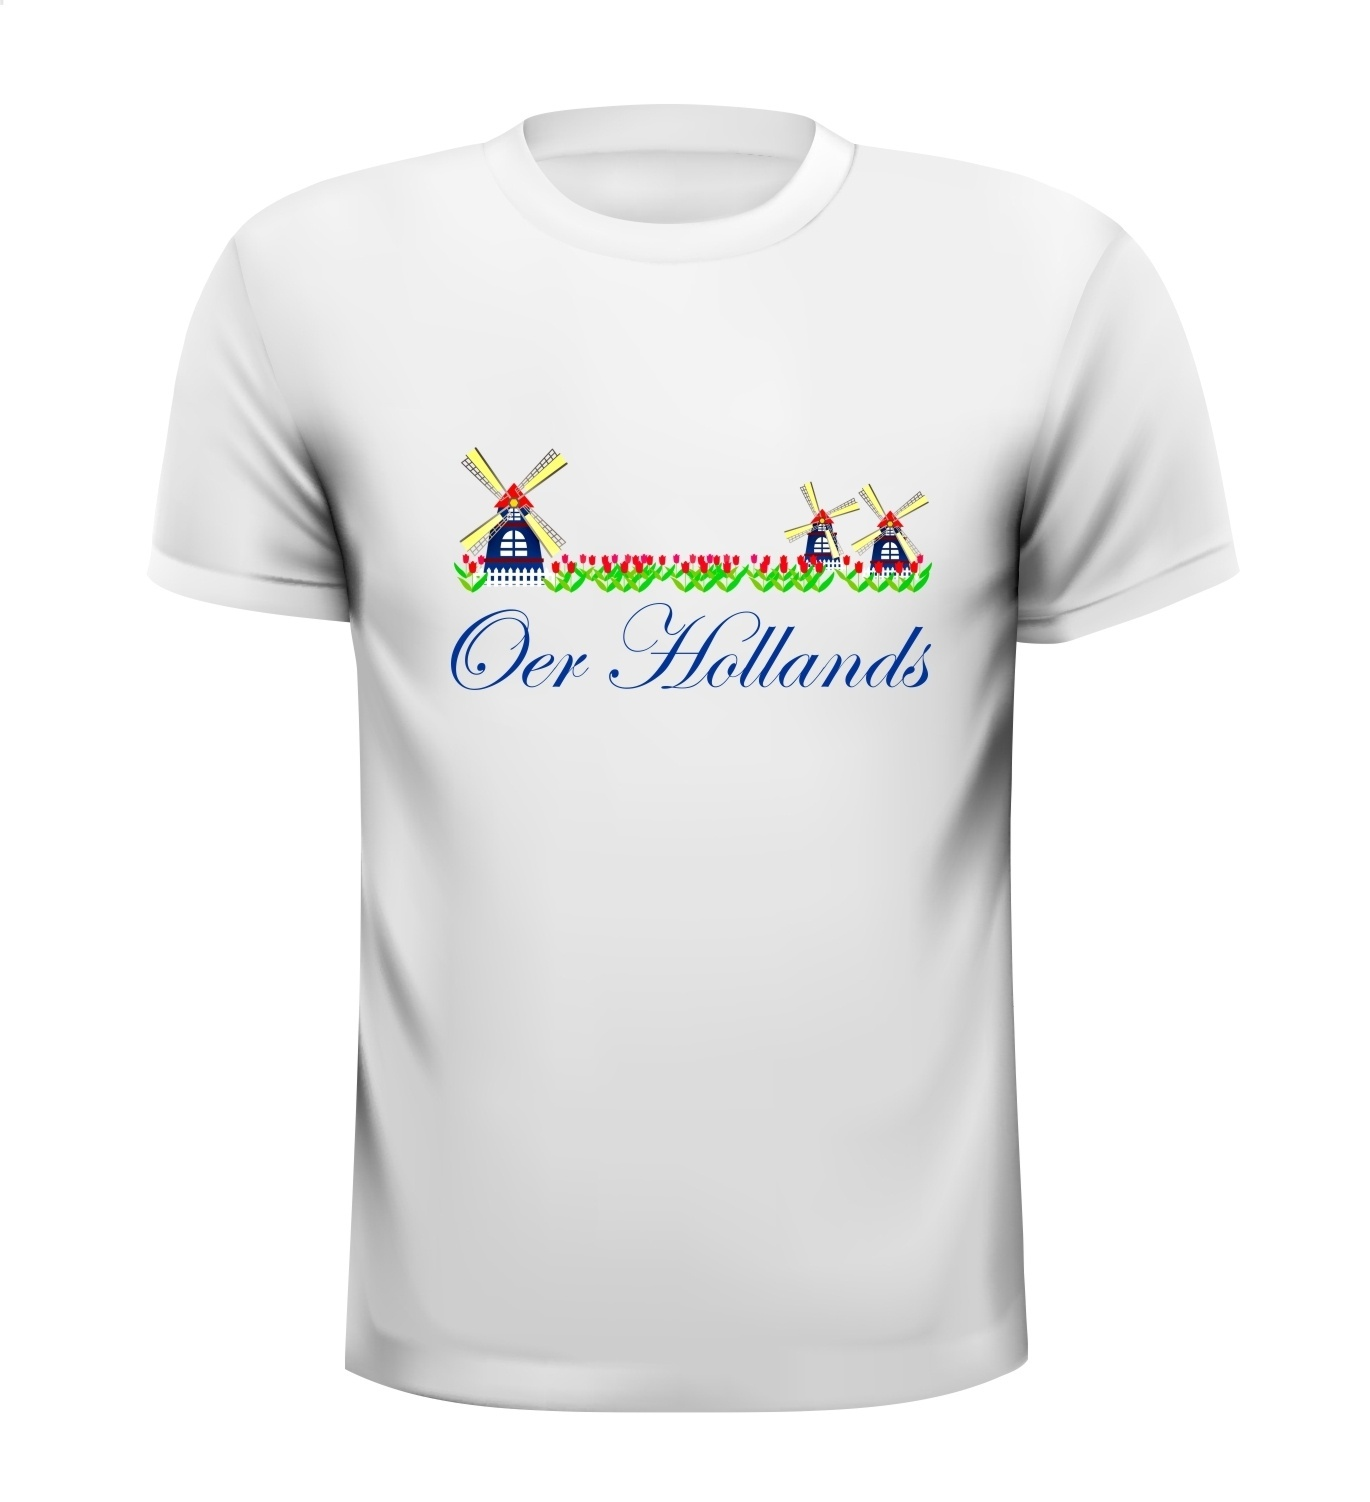 Oer hollands T-shirt